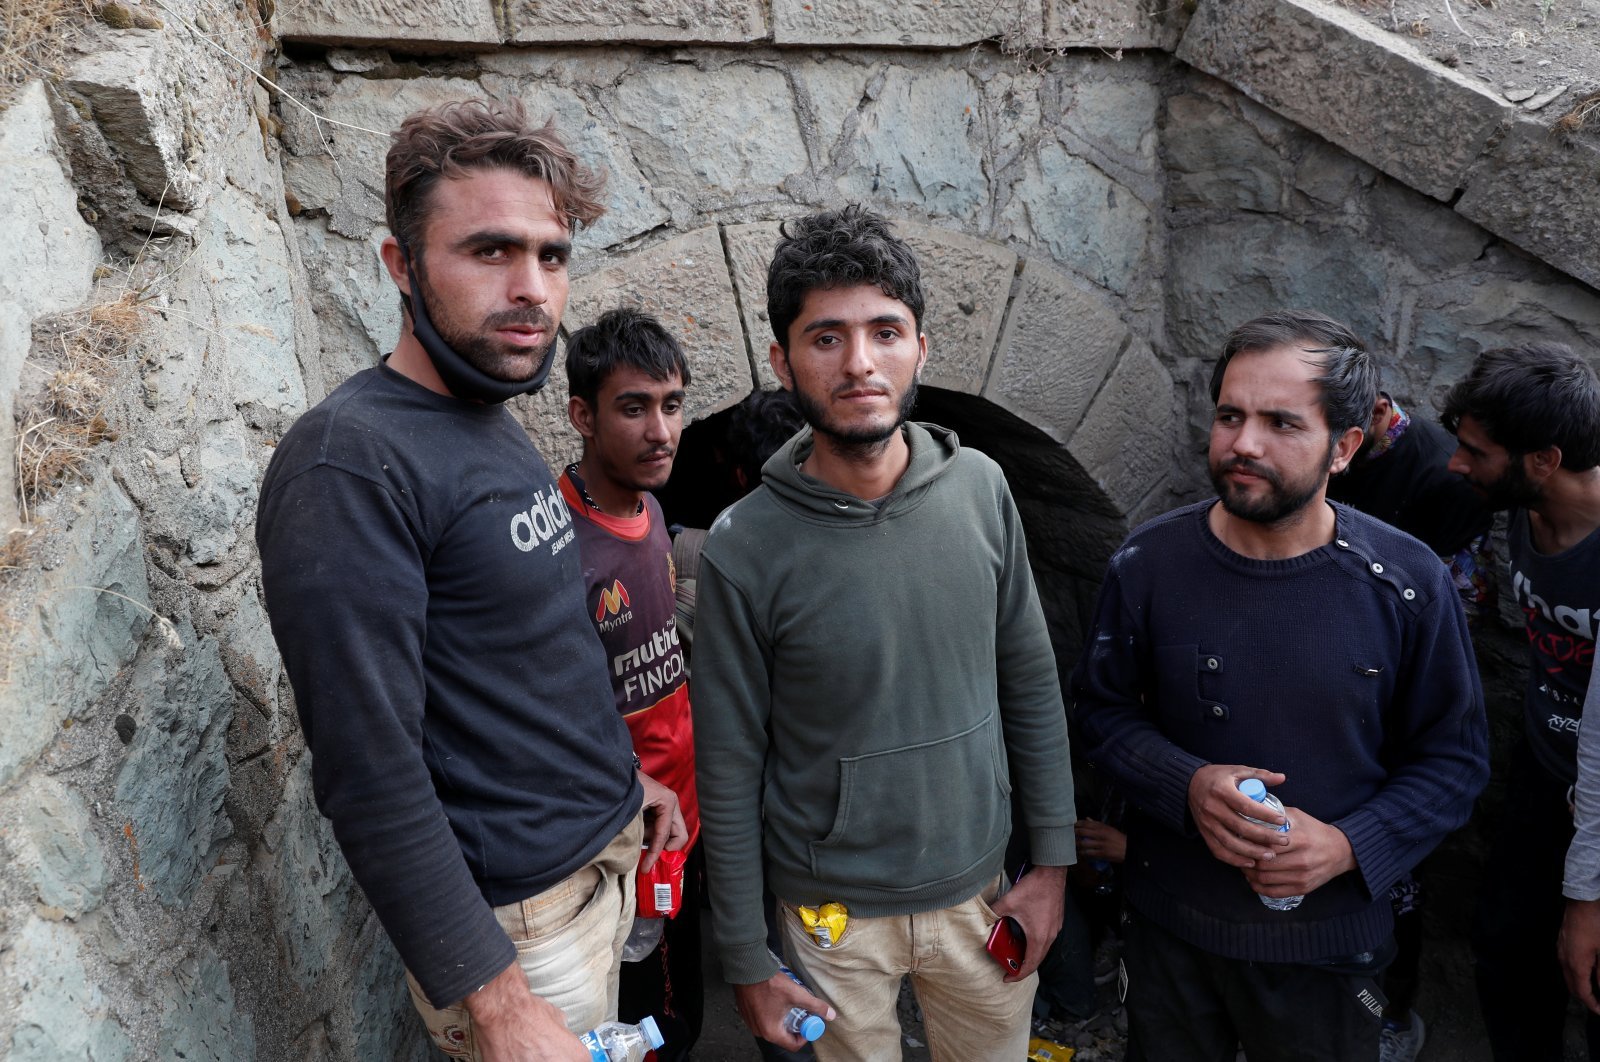 Muhammad Ali (C), an Afghan migrant from Khost who planned to found his own cryptocurrency mining business, and the other migrants hide from security forces after crossing illegally into Turkey from Iran, near Tatvan in Bitlis province, Turkey, Aug. 23, 2021. (Reuters Photo)